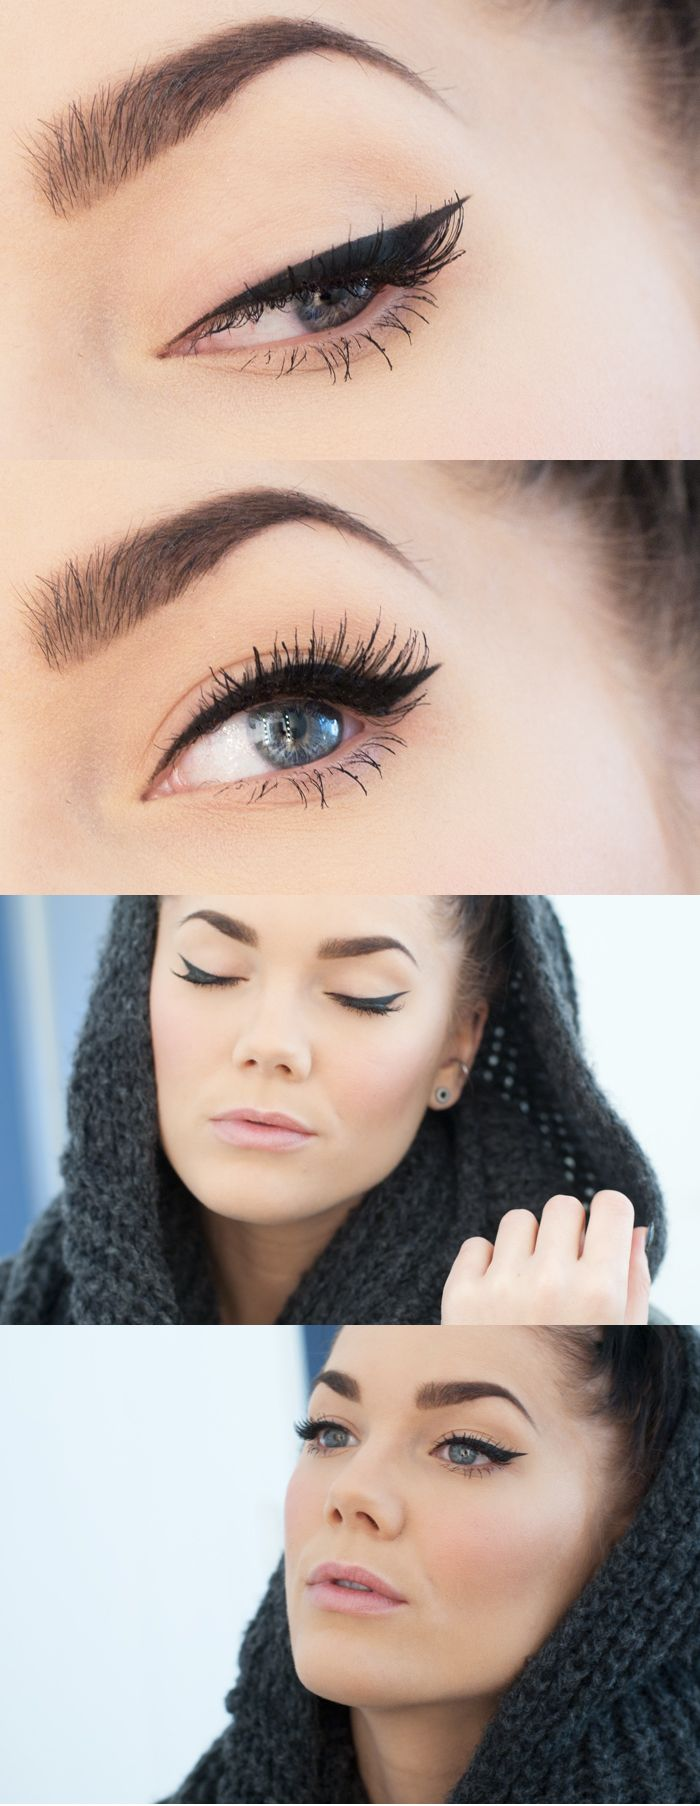 http://nyheter24.se/modette/lindahallberg/2012/12/01/todays-look-everyday-eyeliner-look/